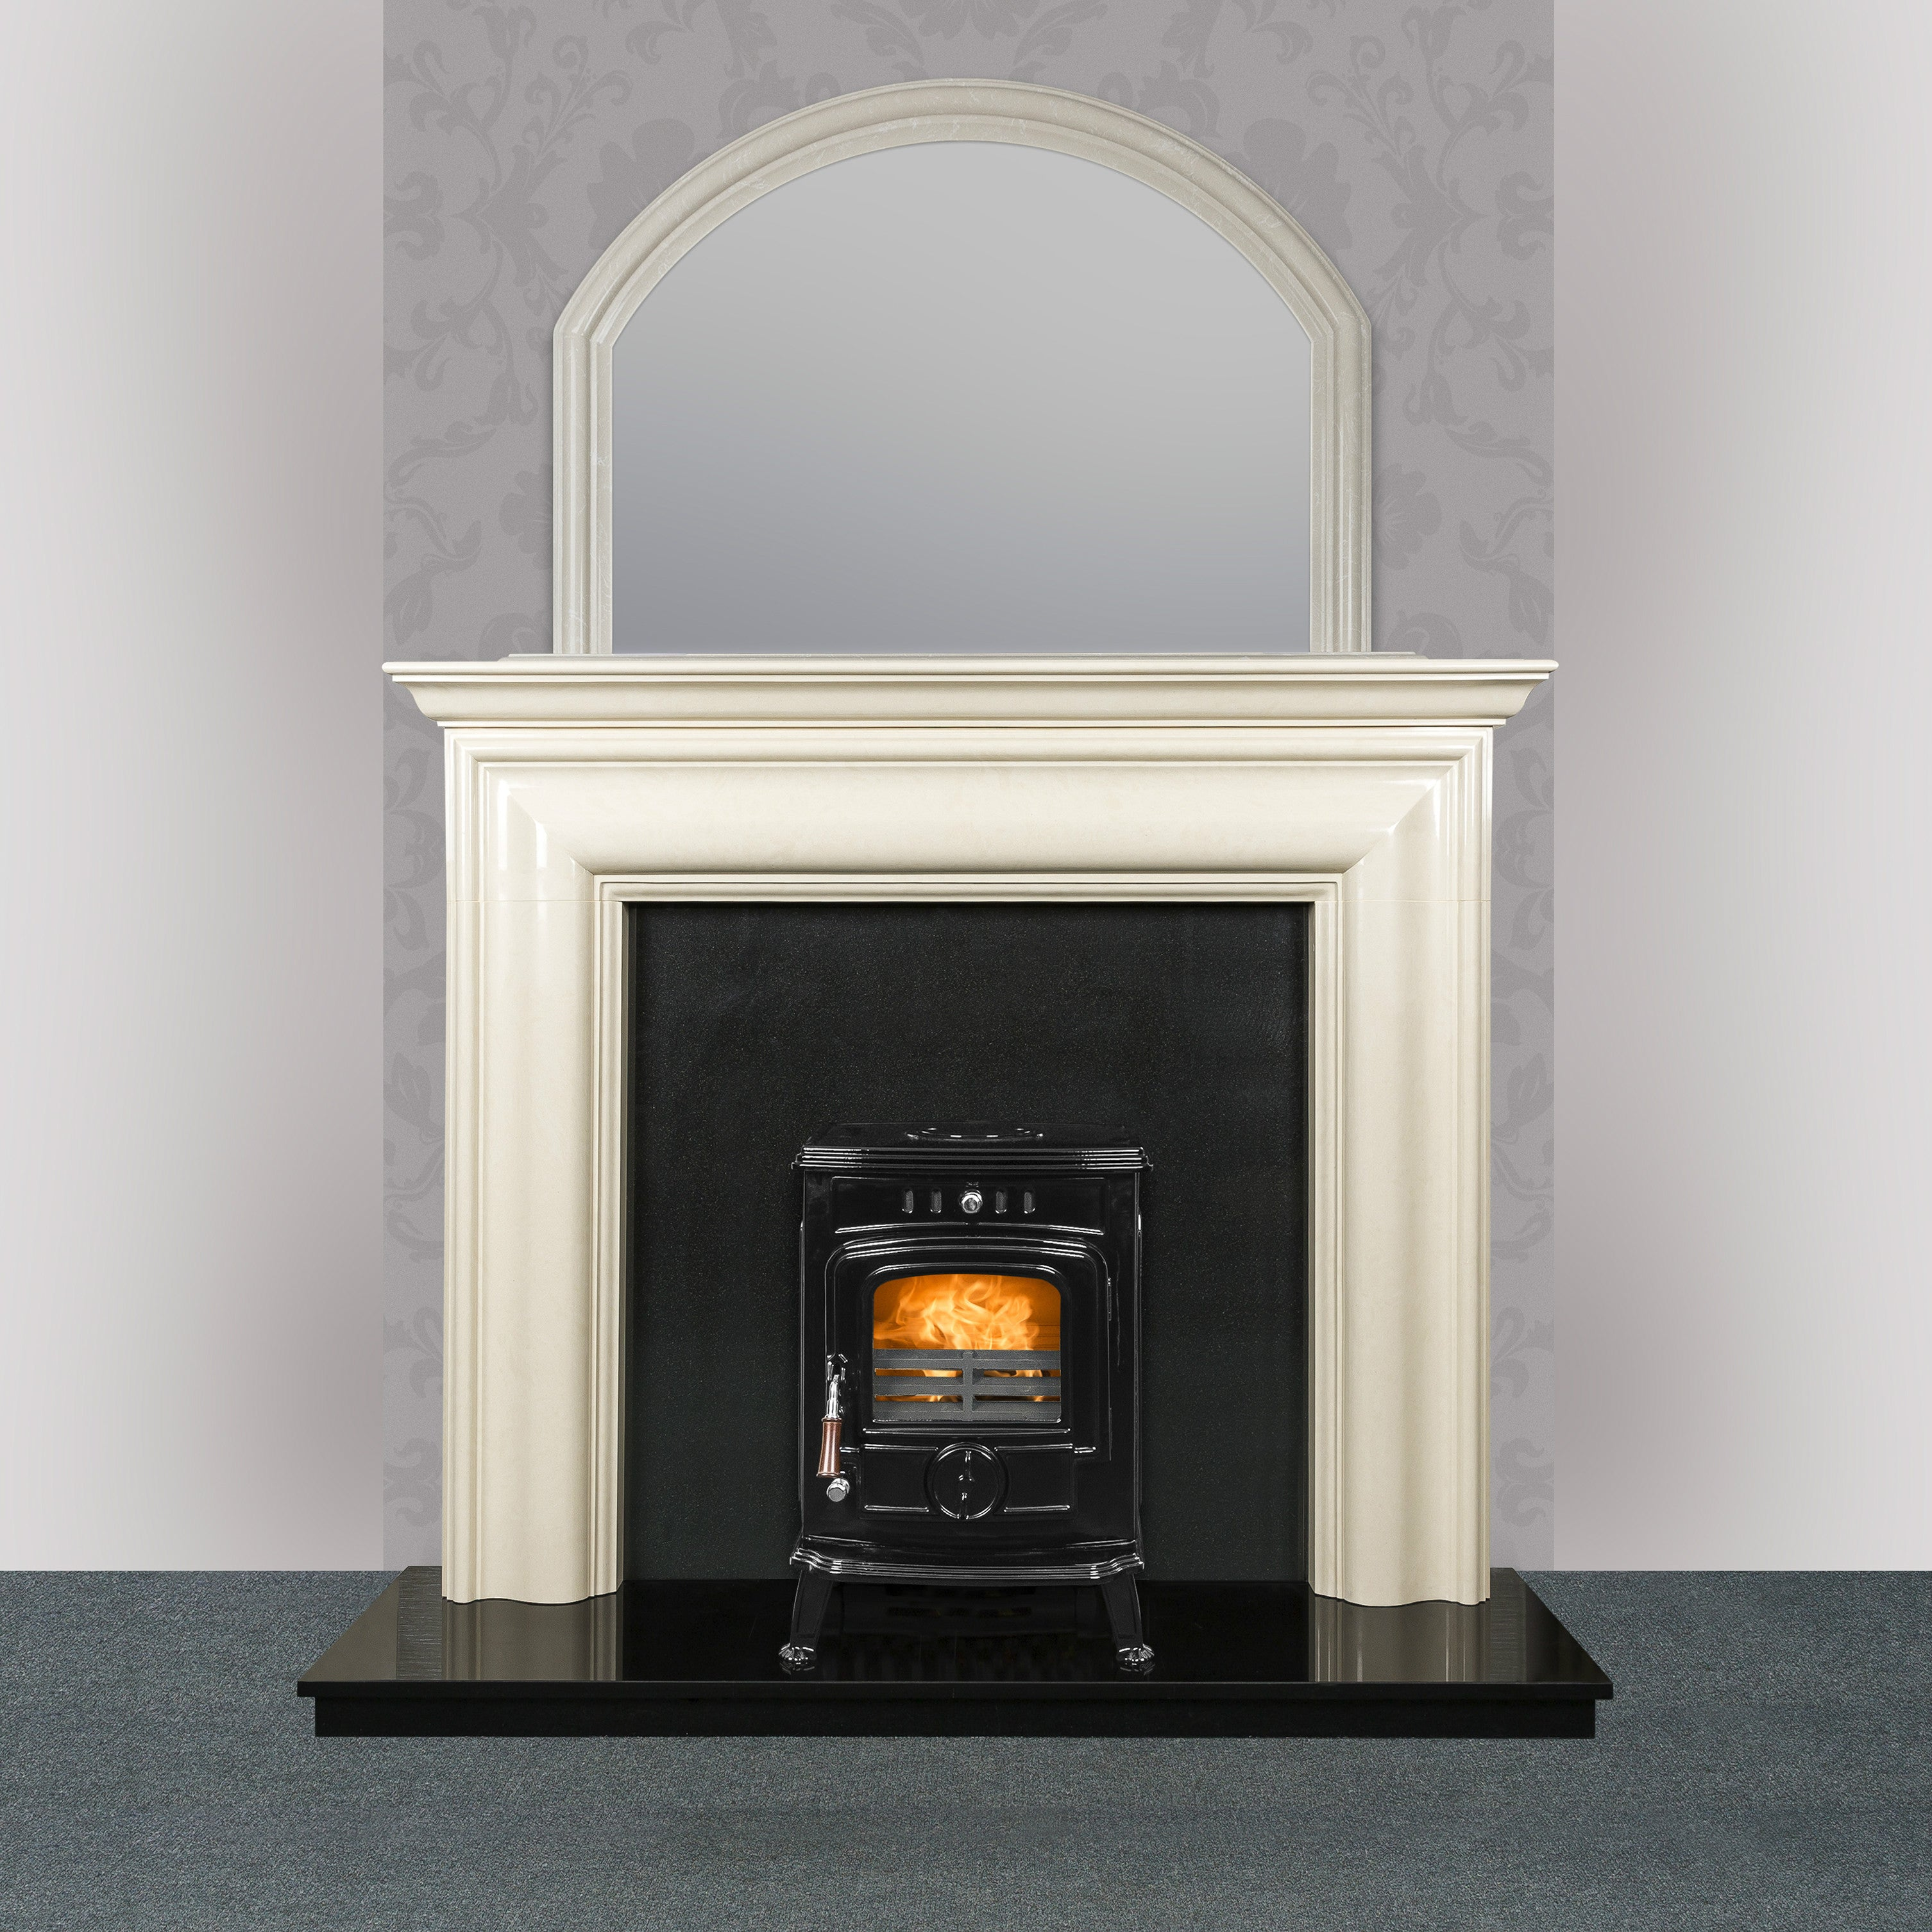 Image of Robin 5 kW Free Standing Stove with a marble fireplace